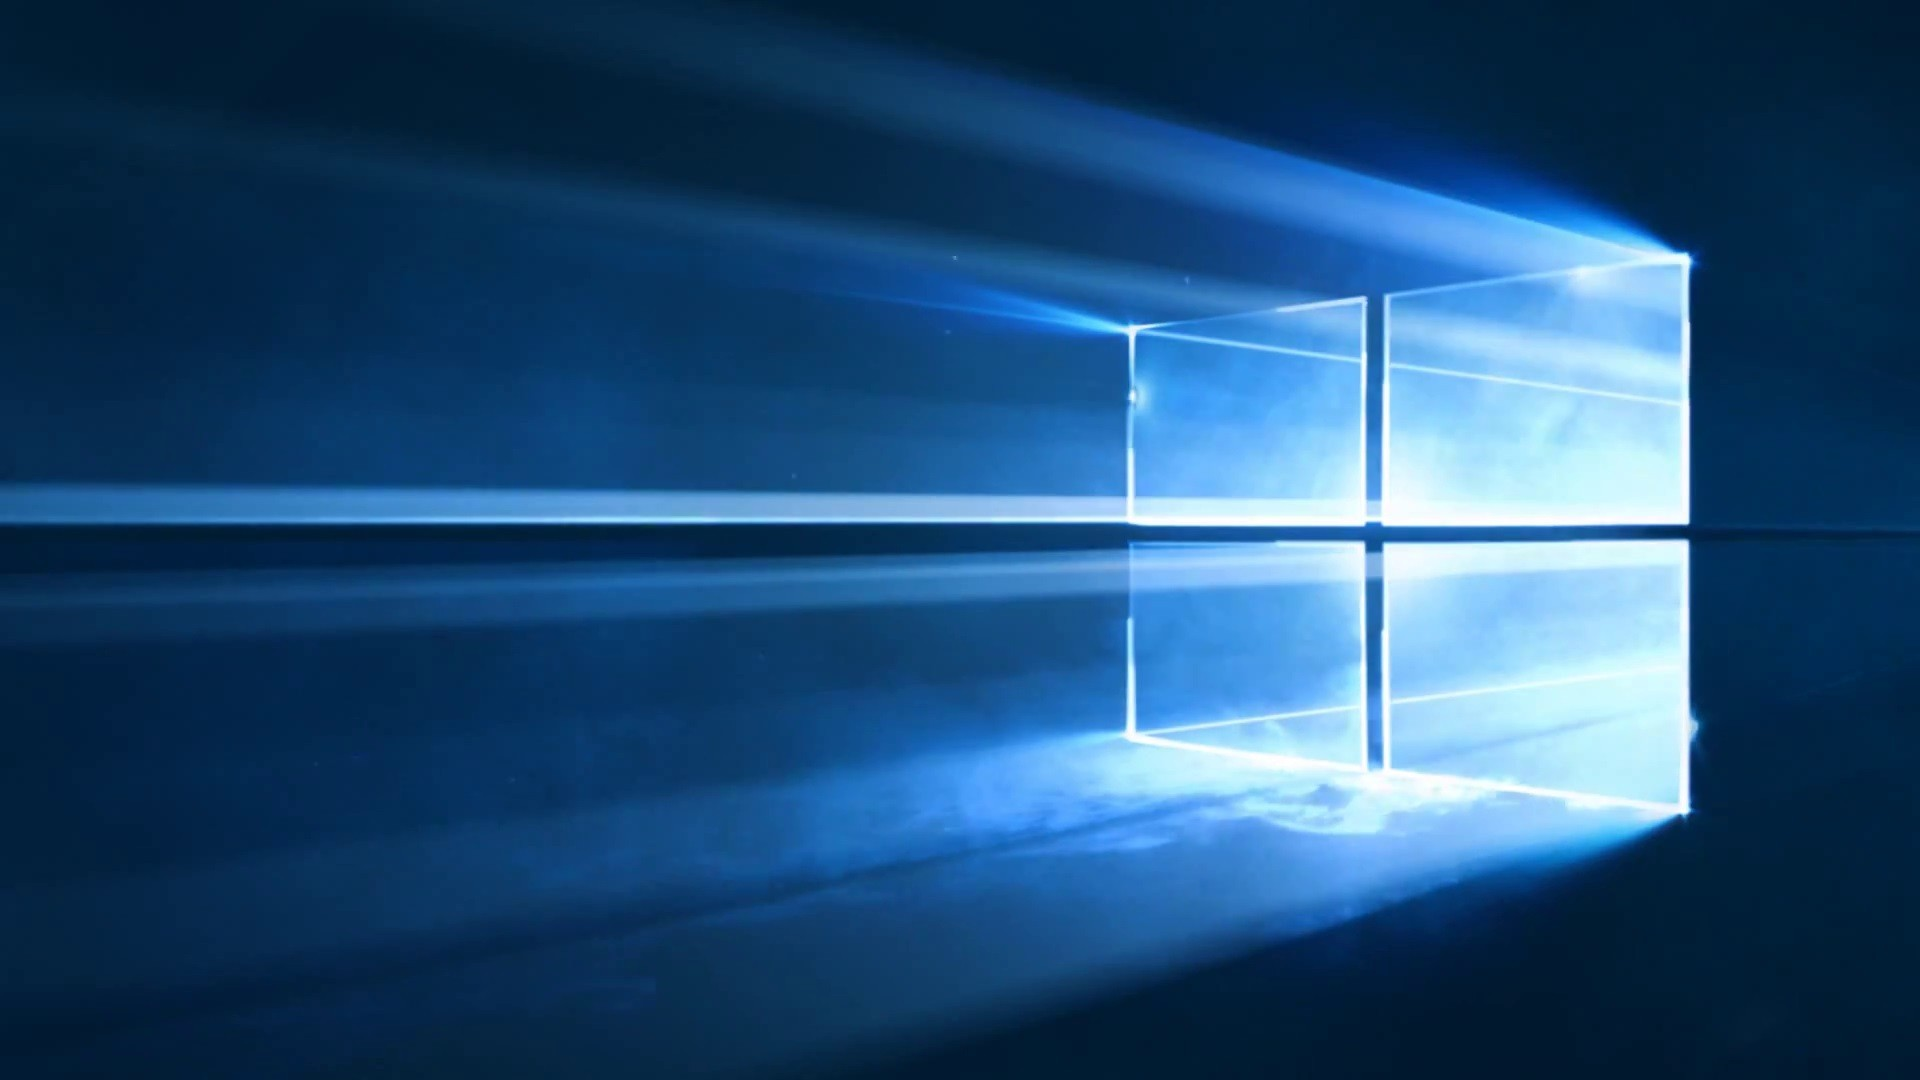 Windows 10 Hero Wallpaper HD (70+ images)